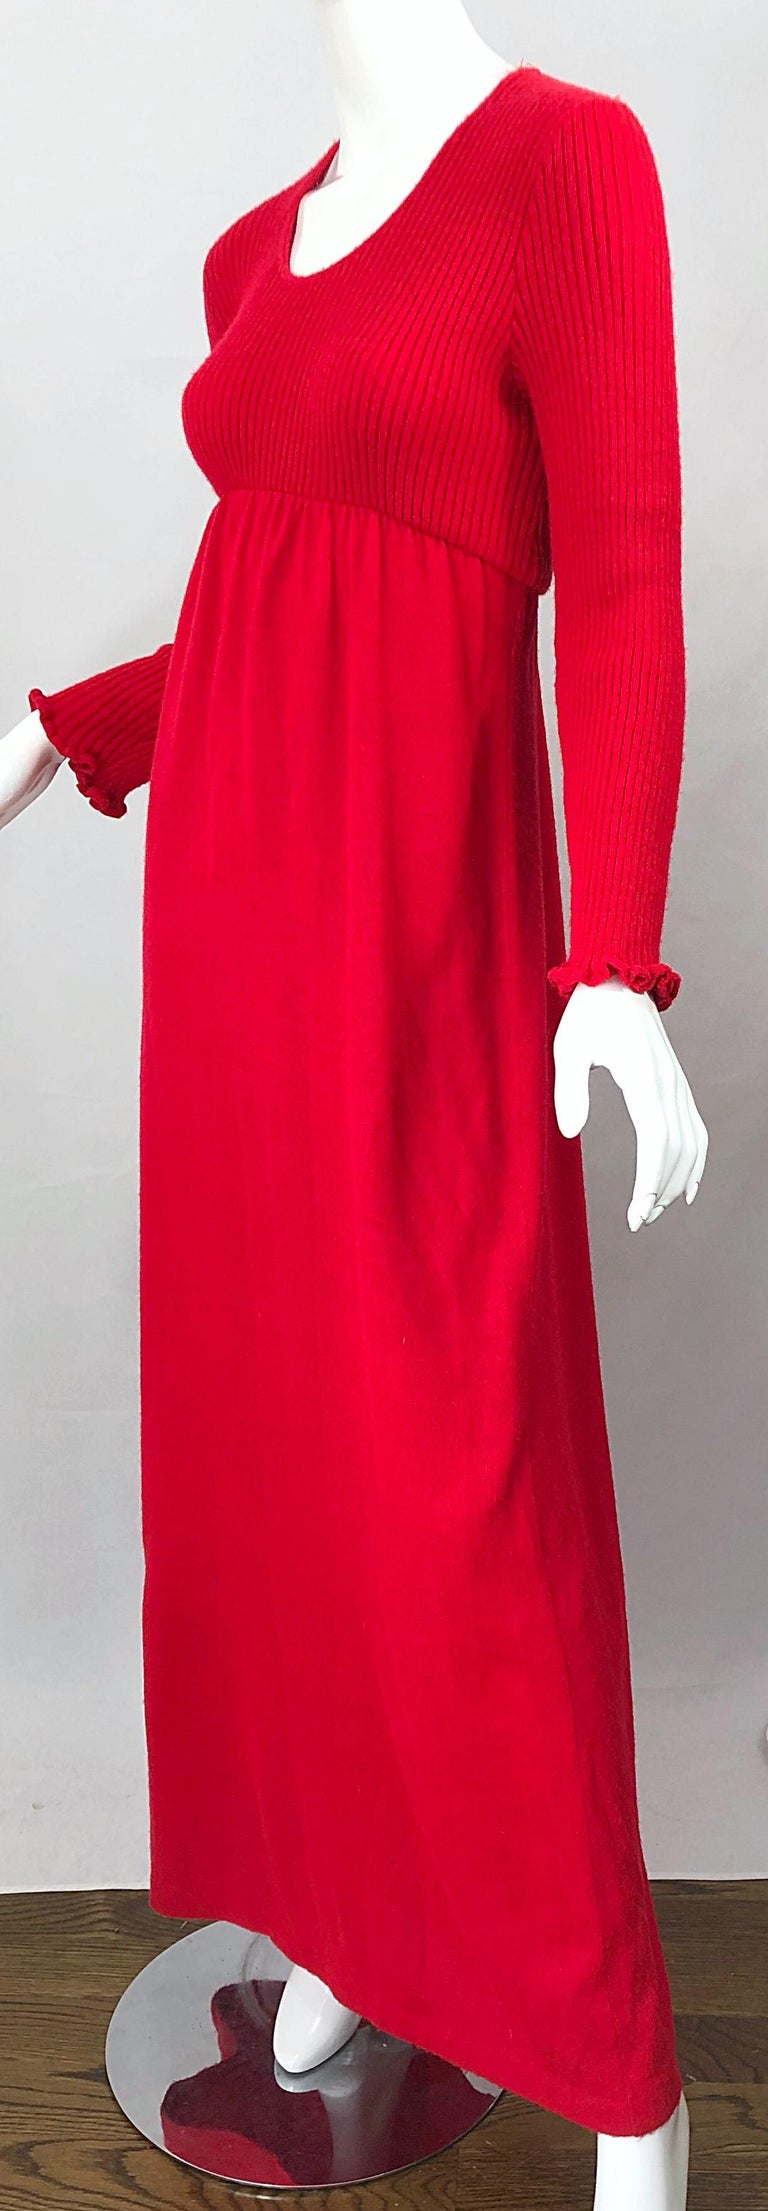 Vintage Joseph Magnin 1970s Lipstick Red Long Sleeve Wool 70s Sweater Maxi Dress For Sale 5